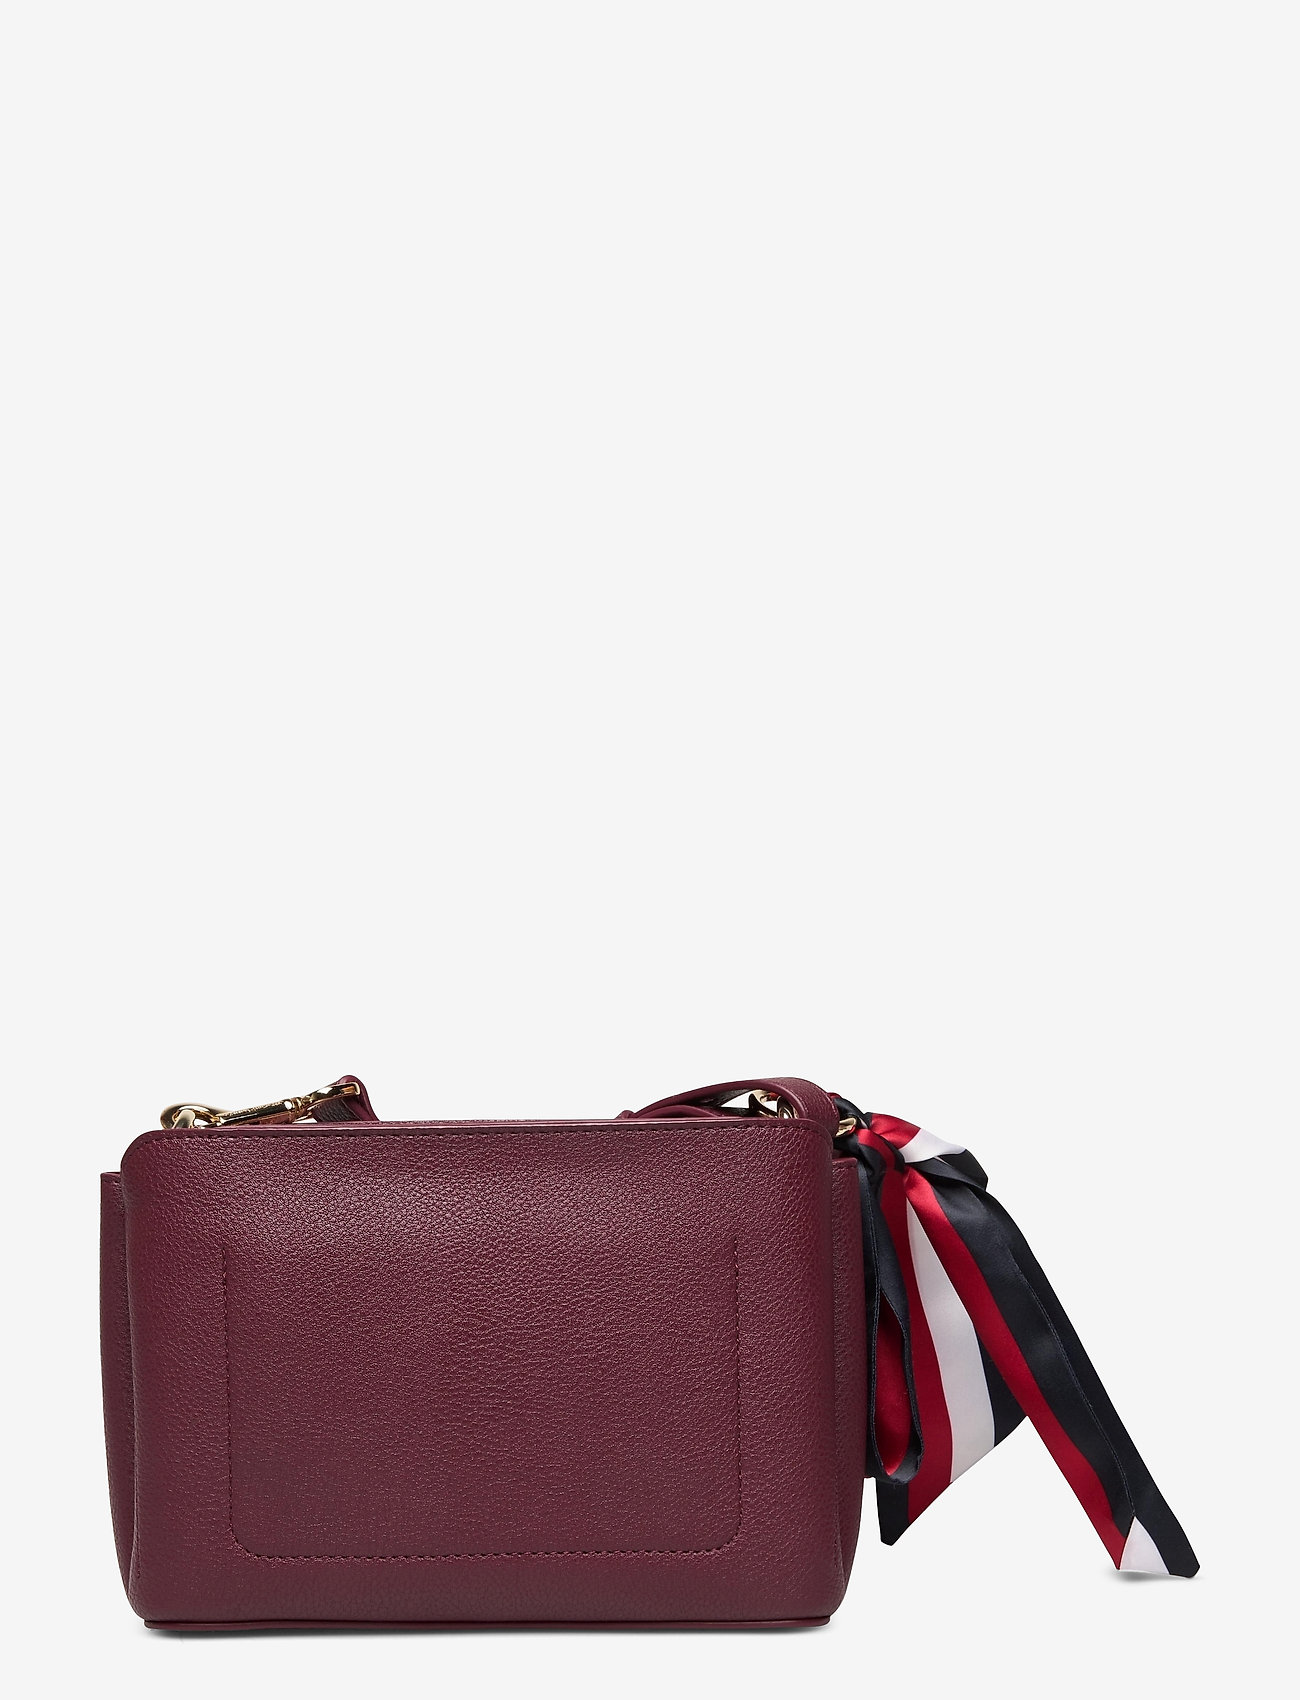 Tommy Hilfiger - CHARMING TOMMY CROSS - shoulder bags - deep rouge - 1